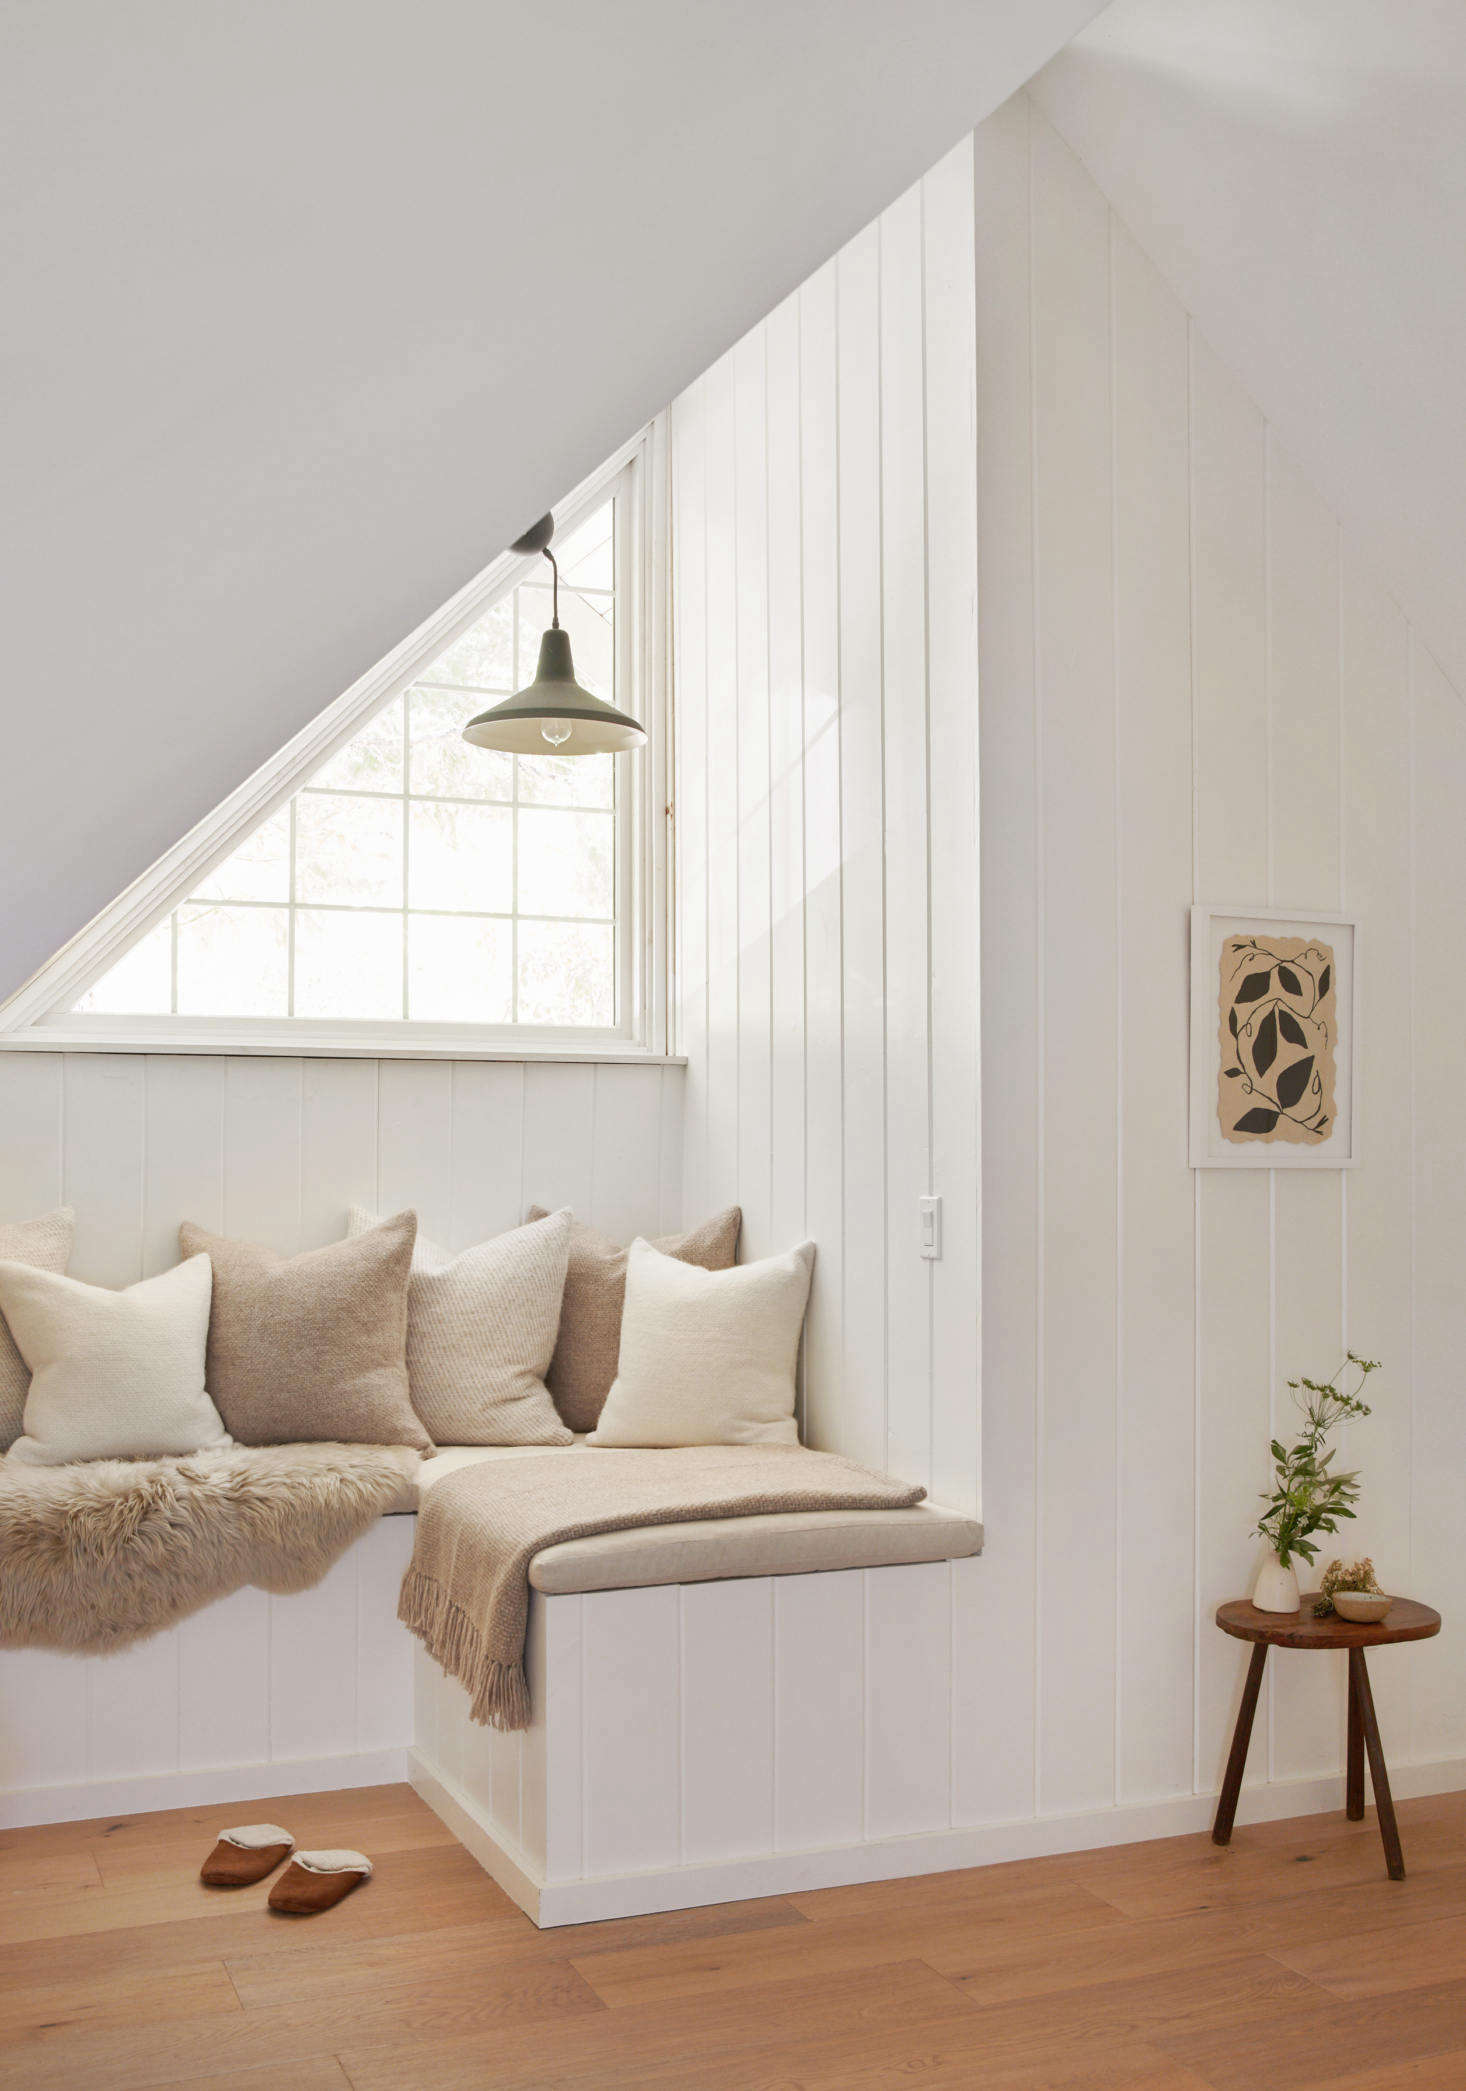 A built-in sitting area makes use of a nook beneath a window.